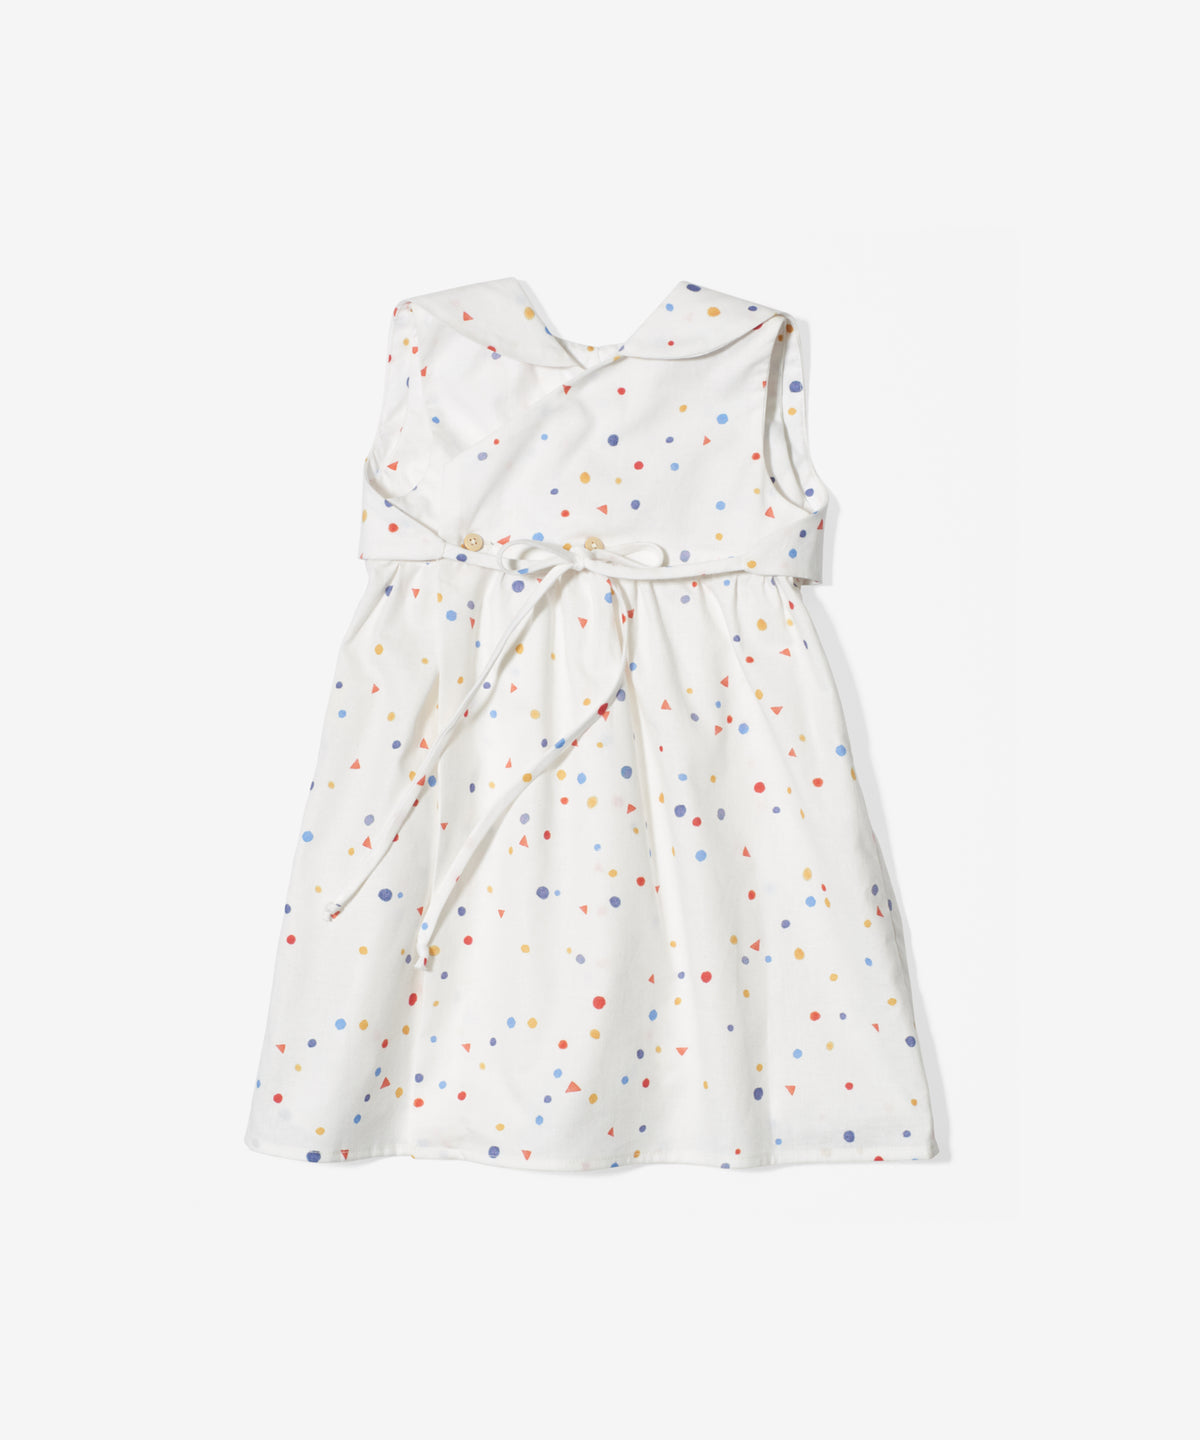 Francesca Baby Dress, Signature Dot